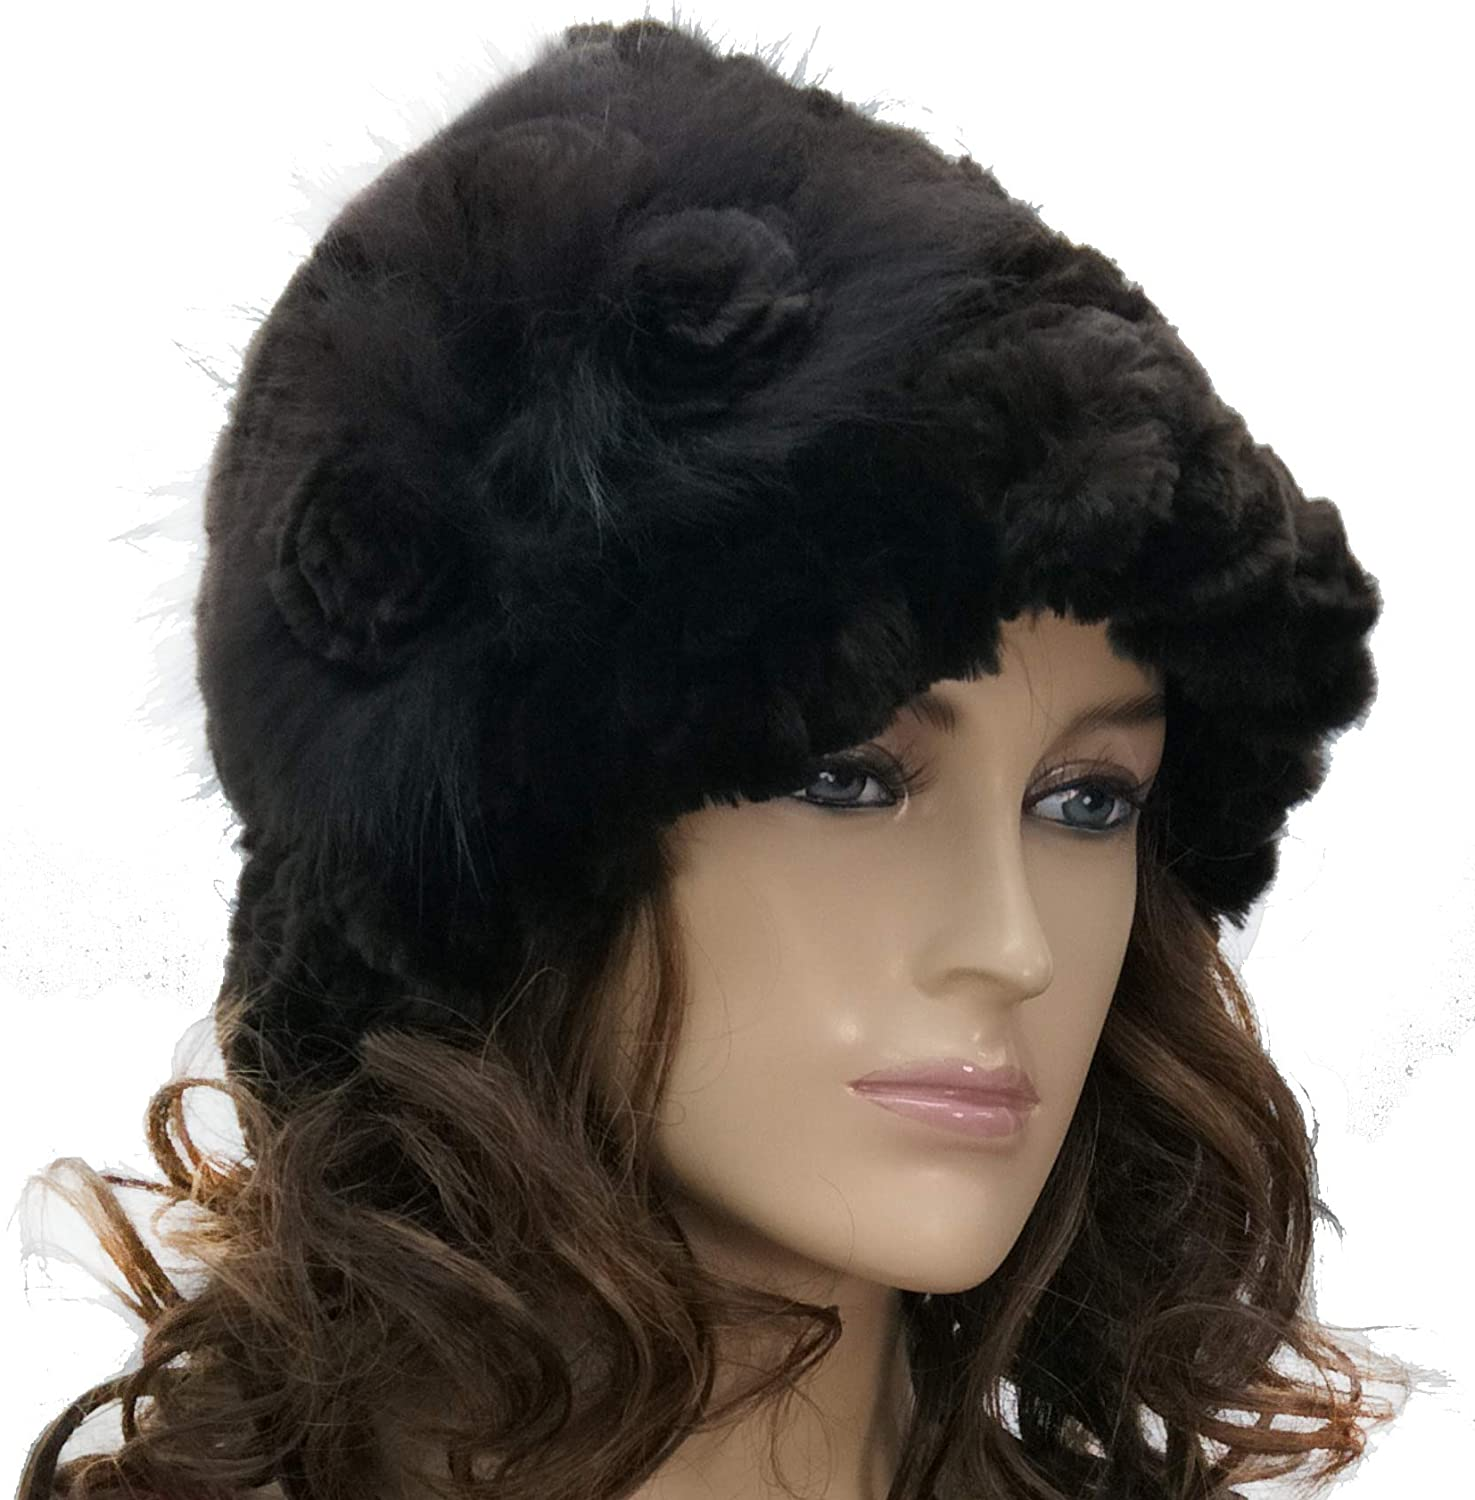 Hima 100/% Rex Rabbit Fur Floppy Hat with Three Rosettes